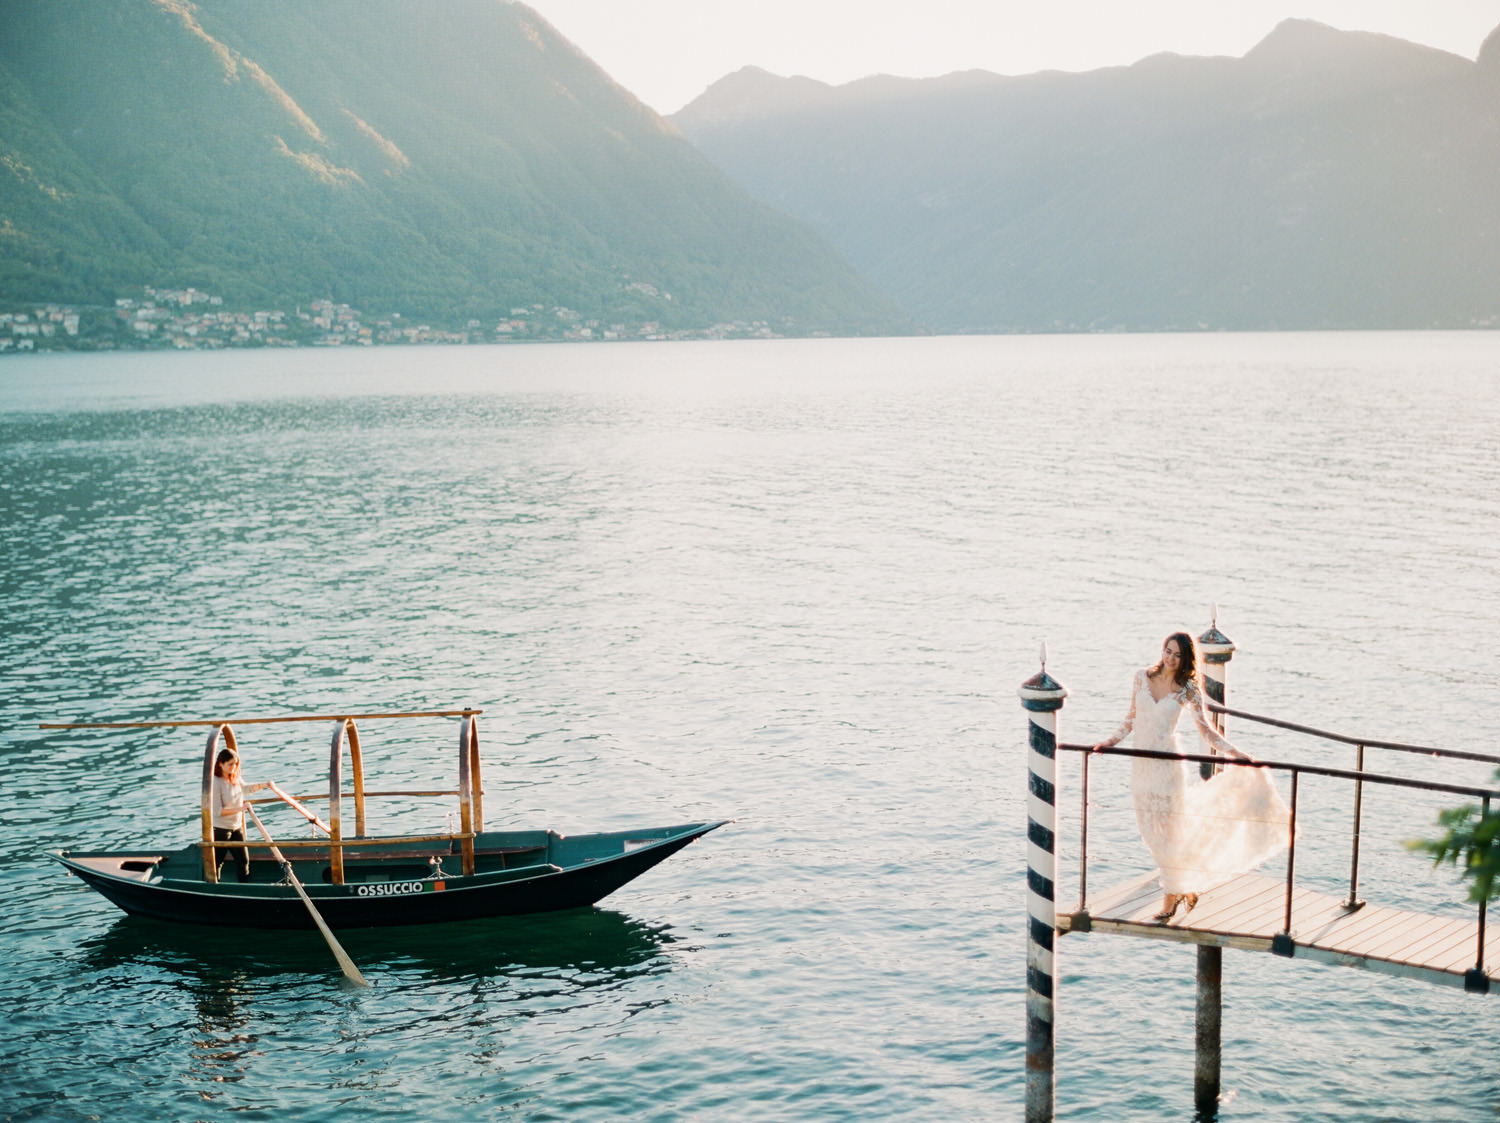 villa balbiano view of lake como with bride on dock and boat